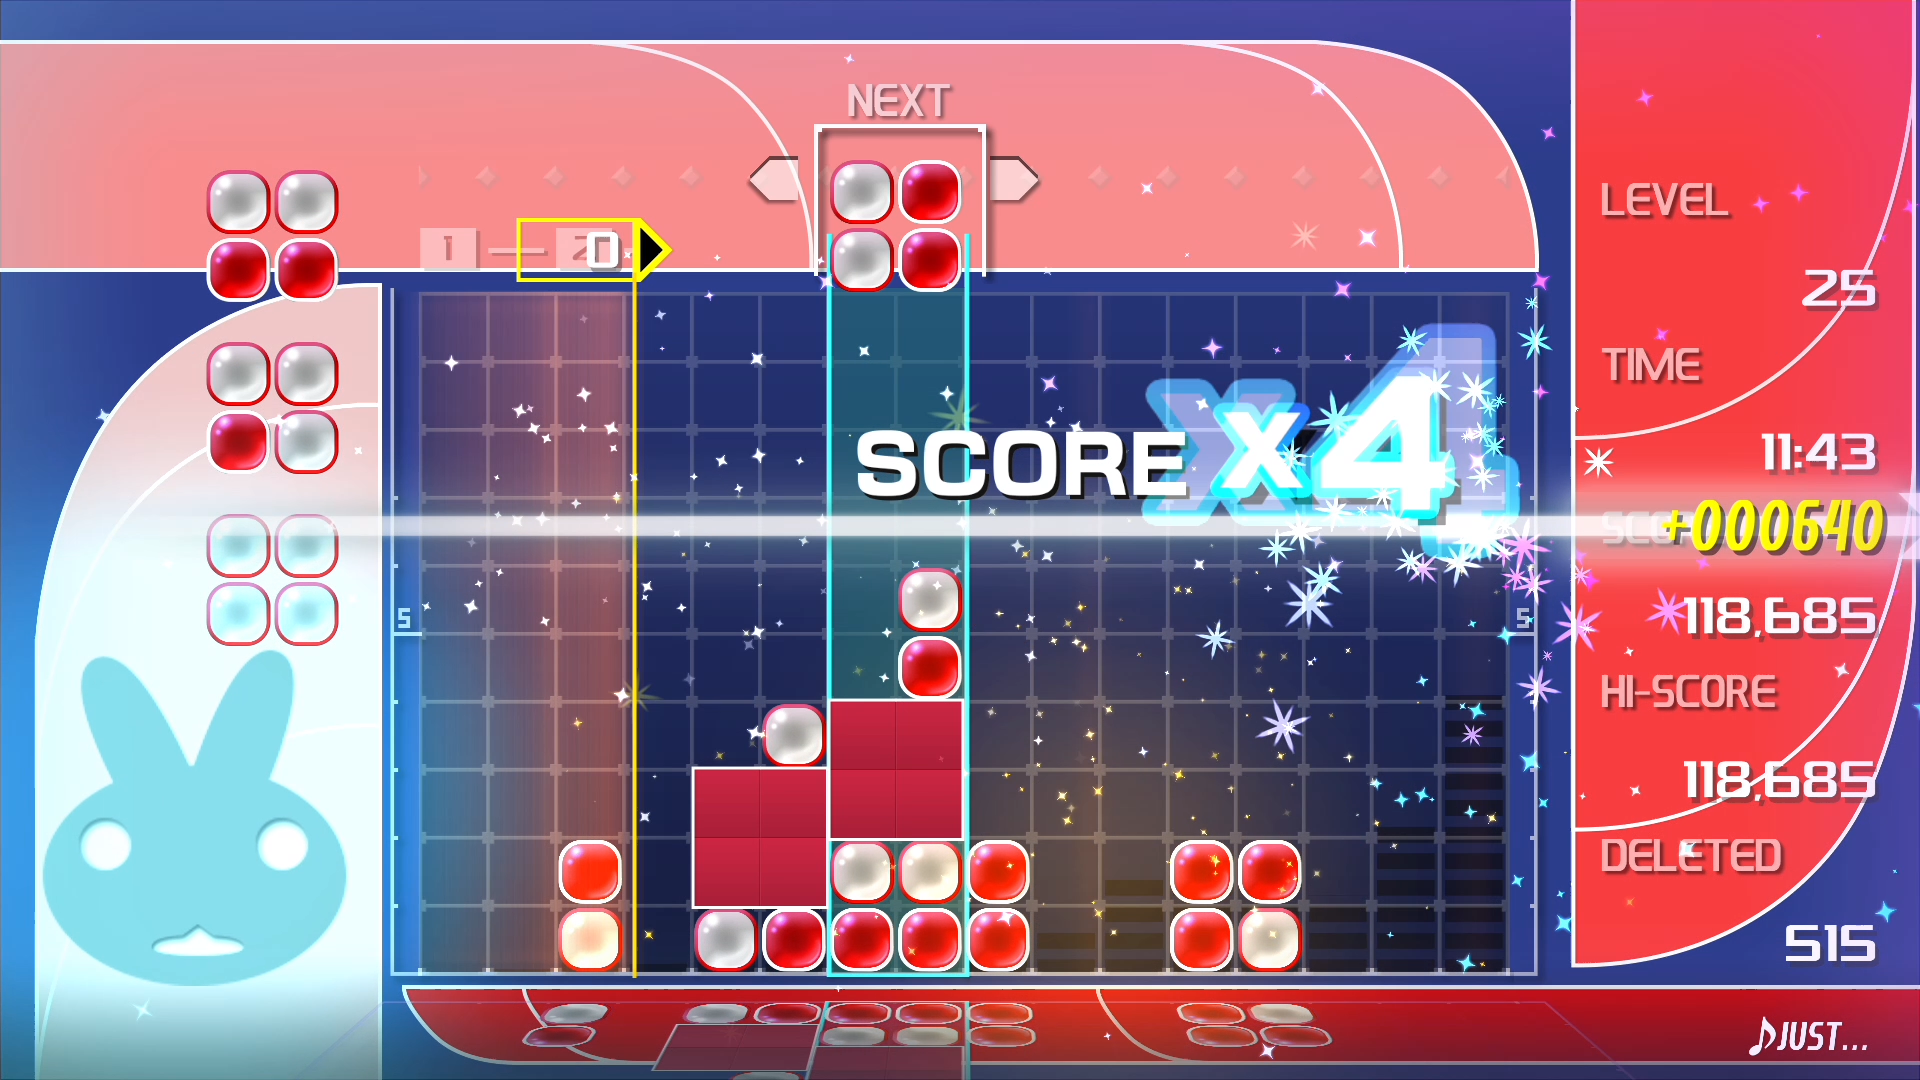 Lumines Remastered is coming to consoles and Steam this spring